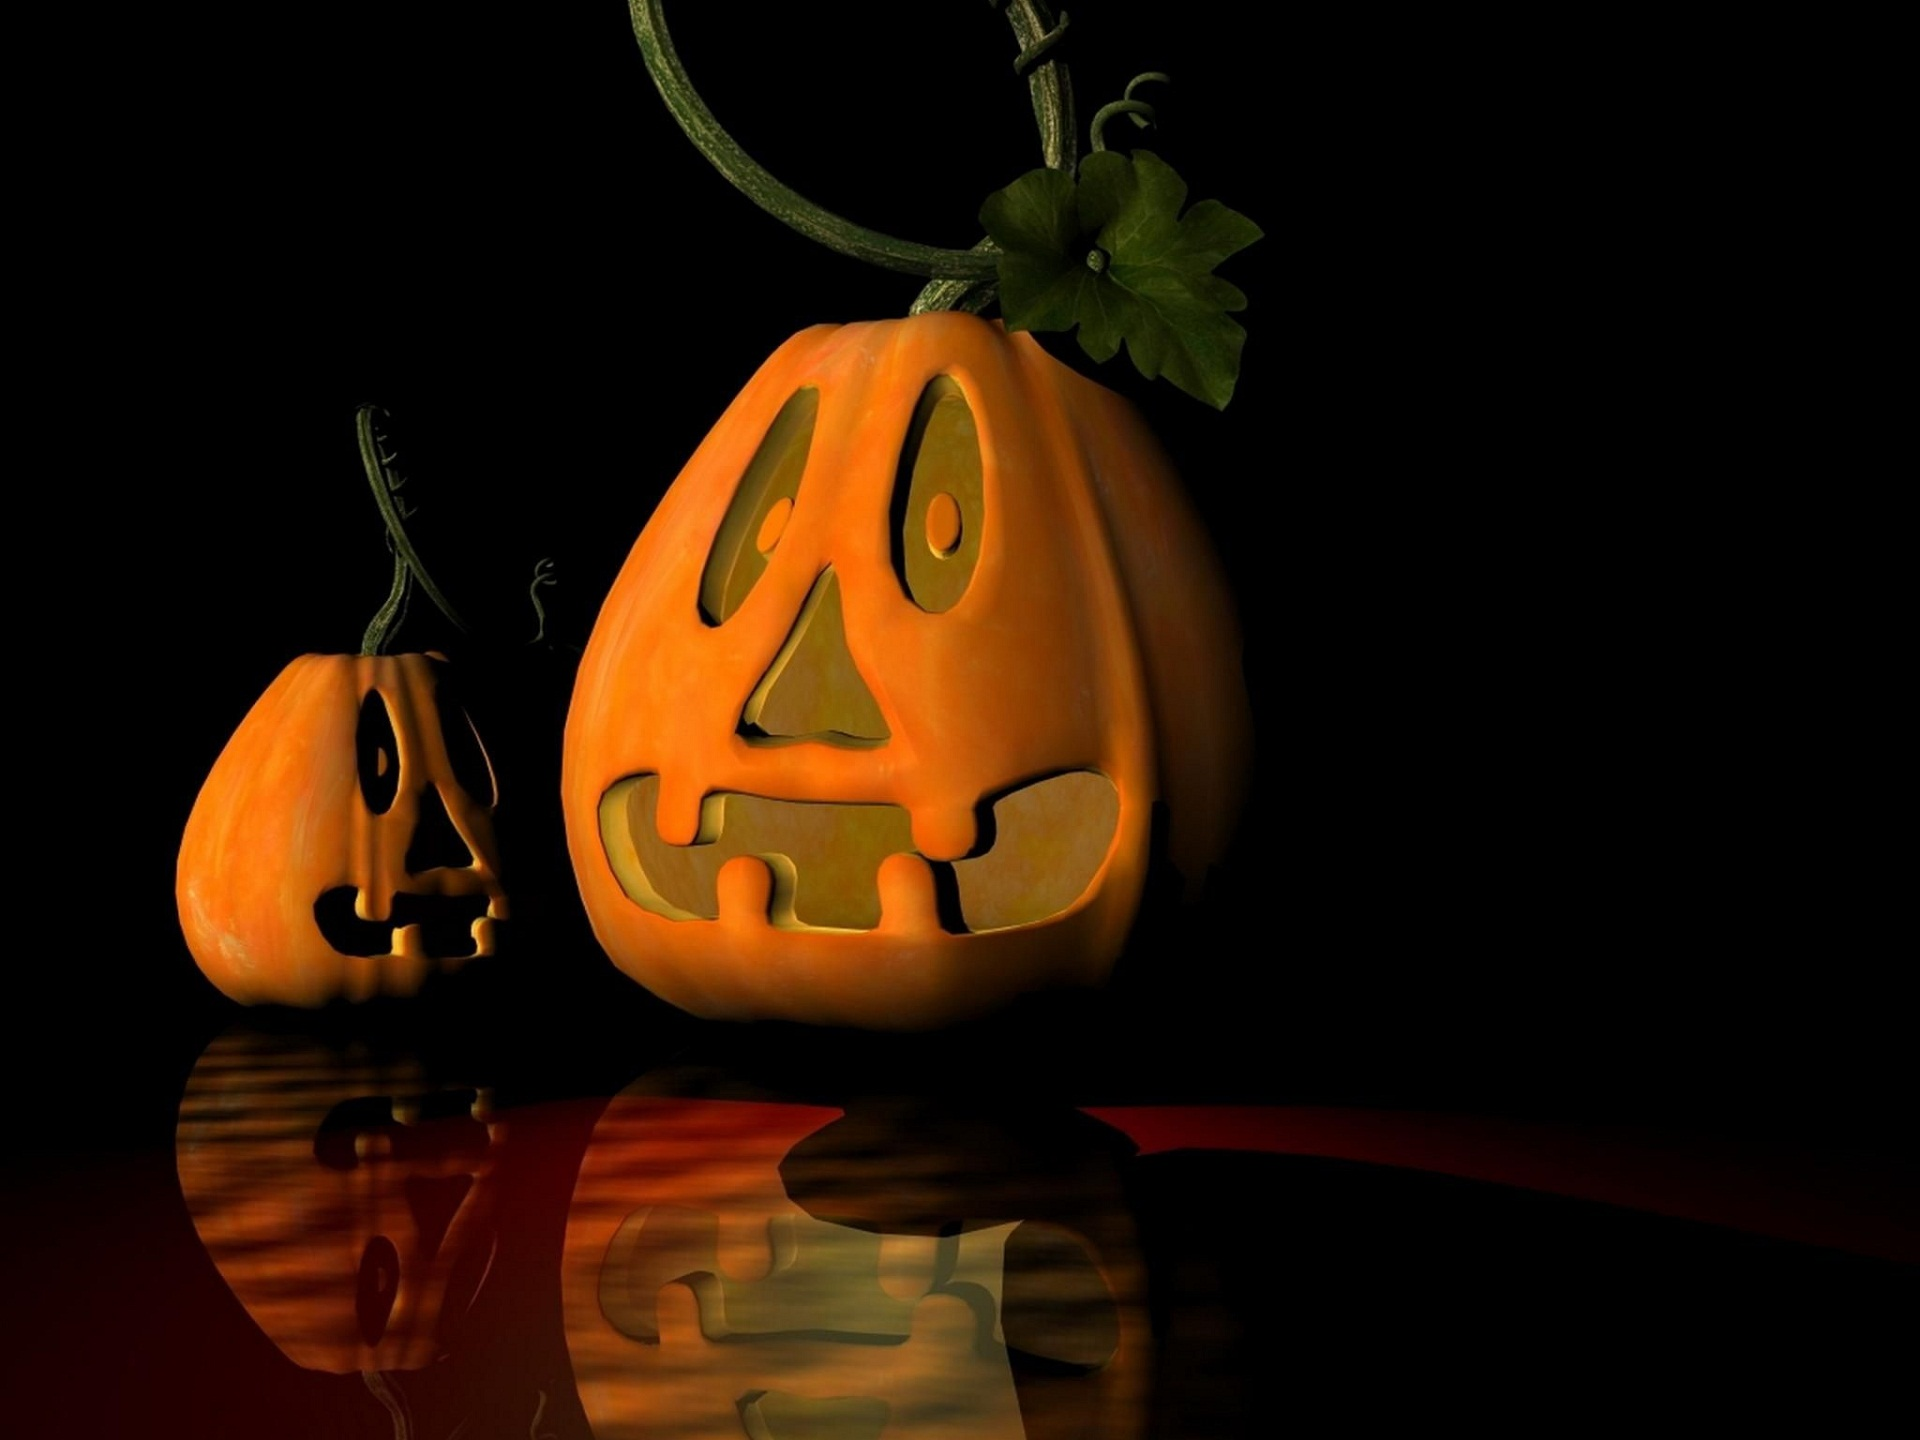 funny-pumpkins-wallpaper